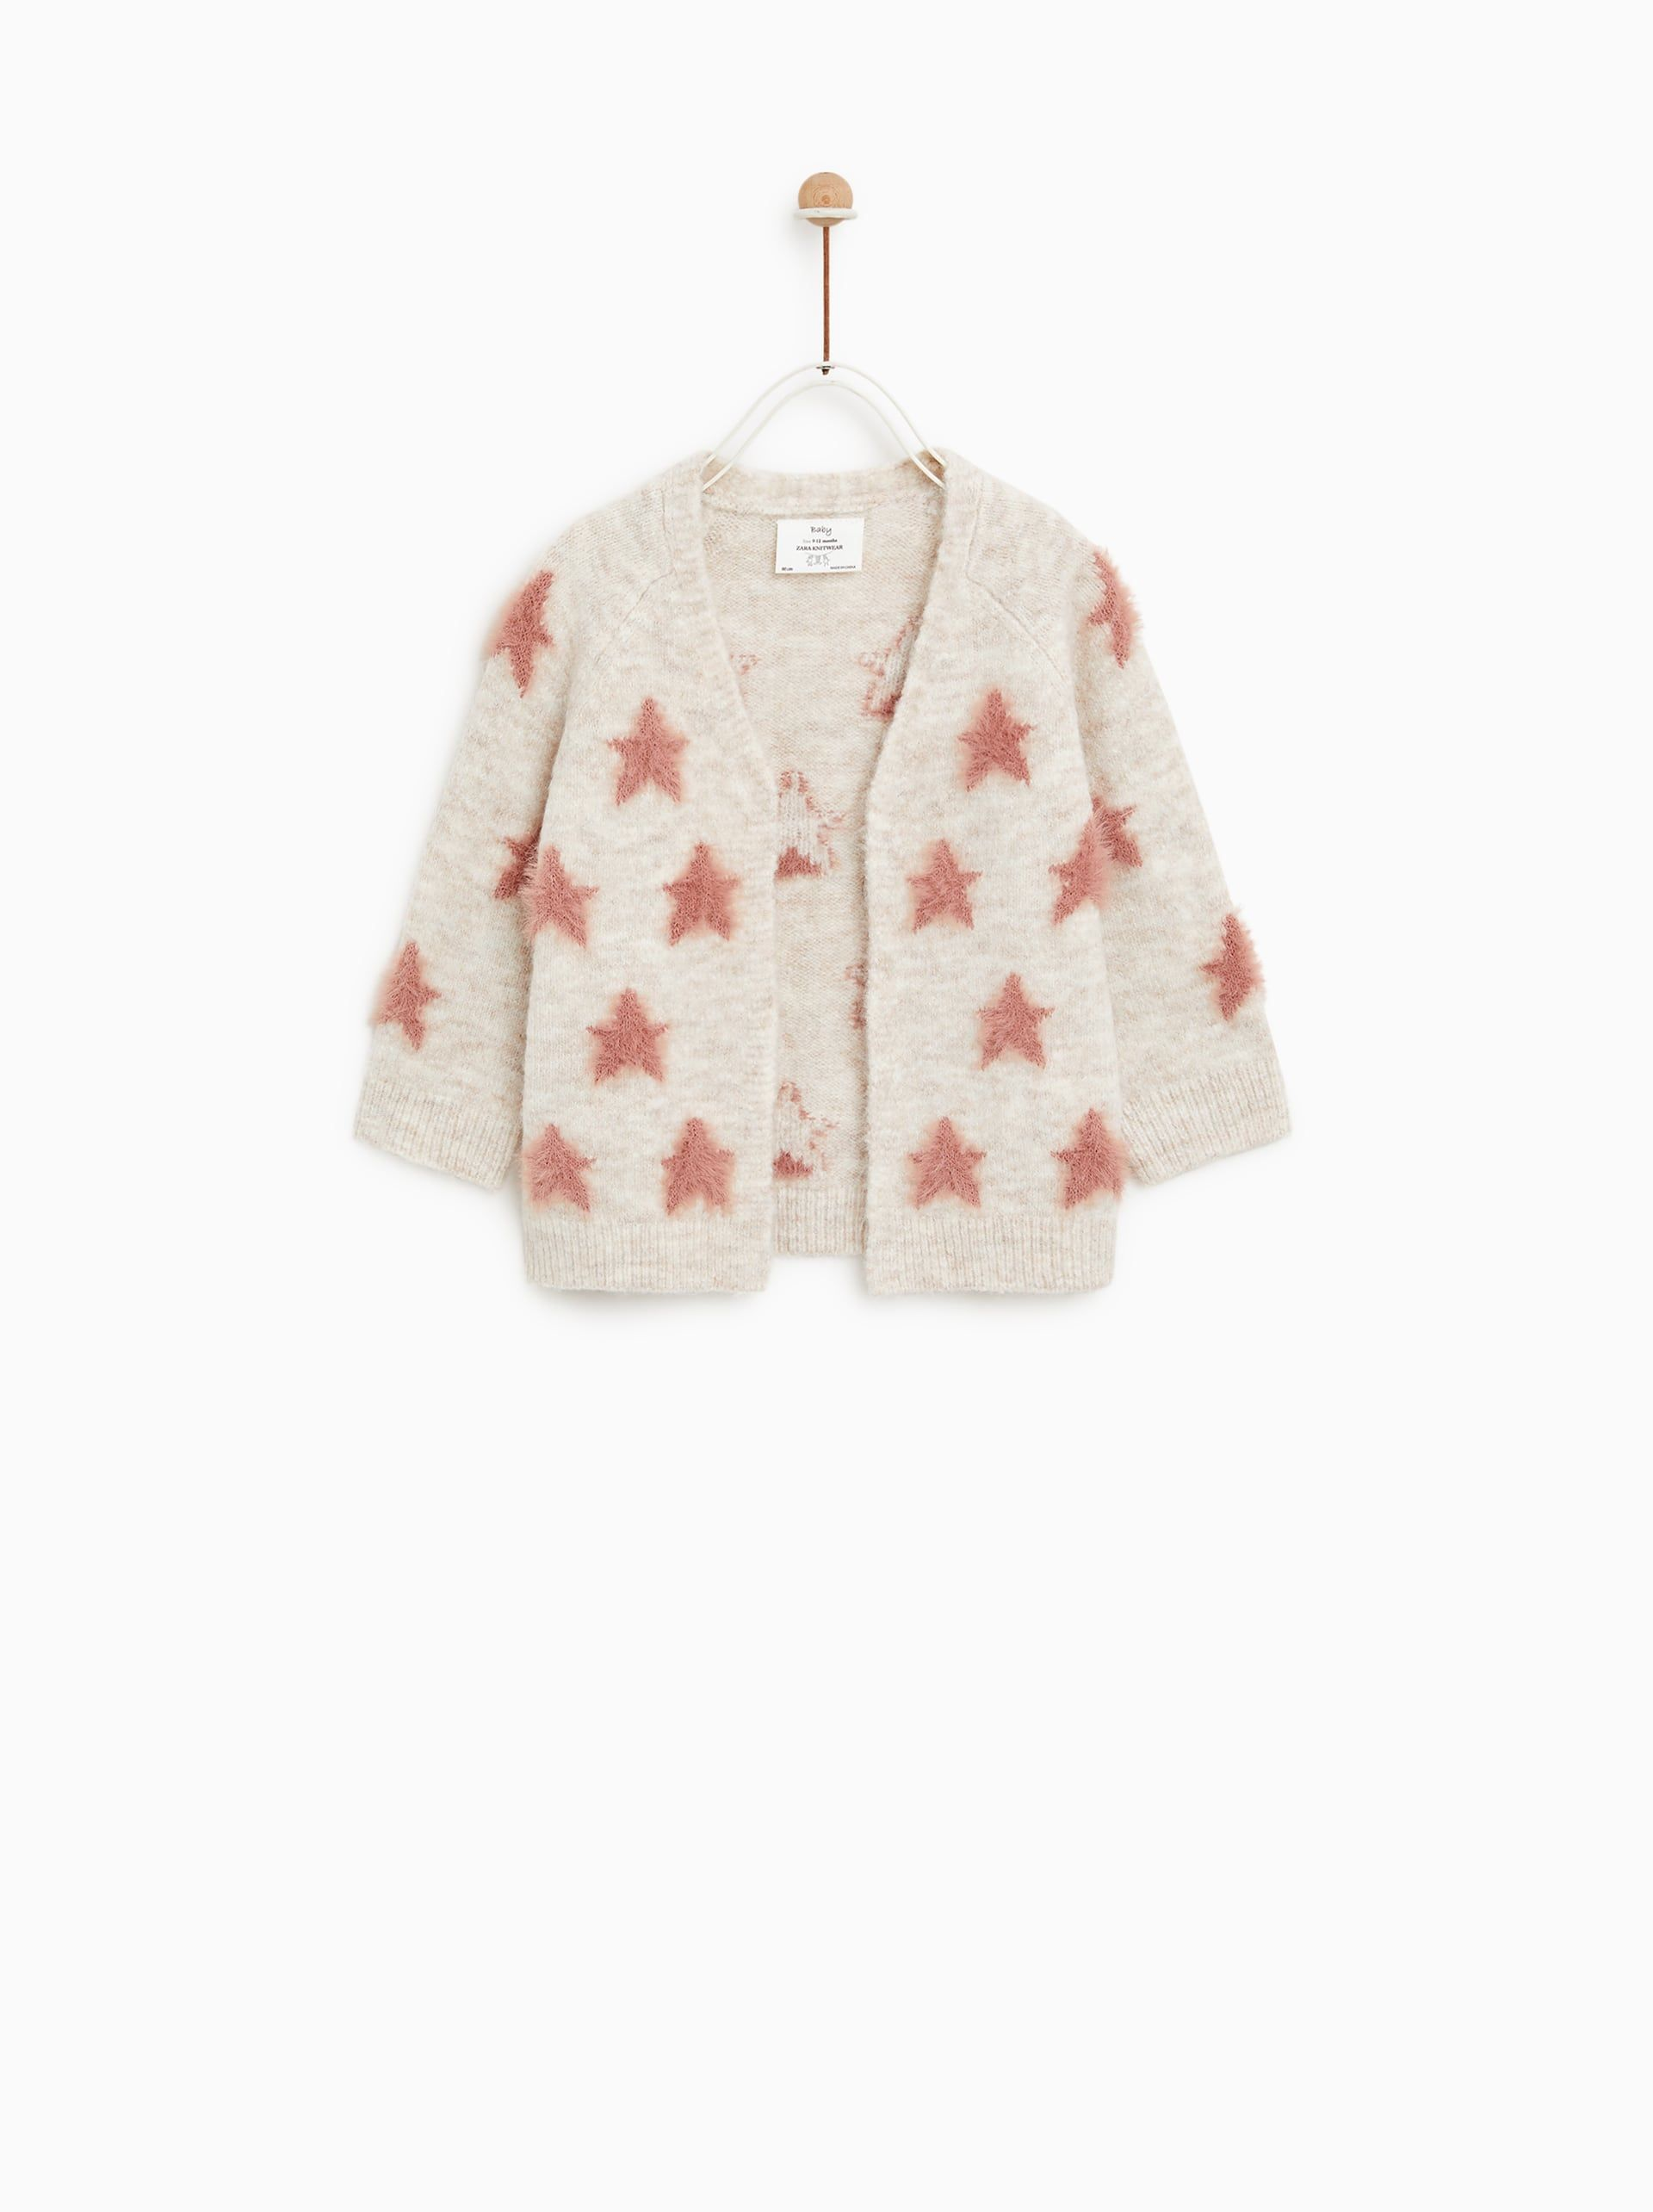 Ongekend Star print cardigan | Toddler girl outfits TH-41